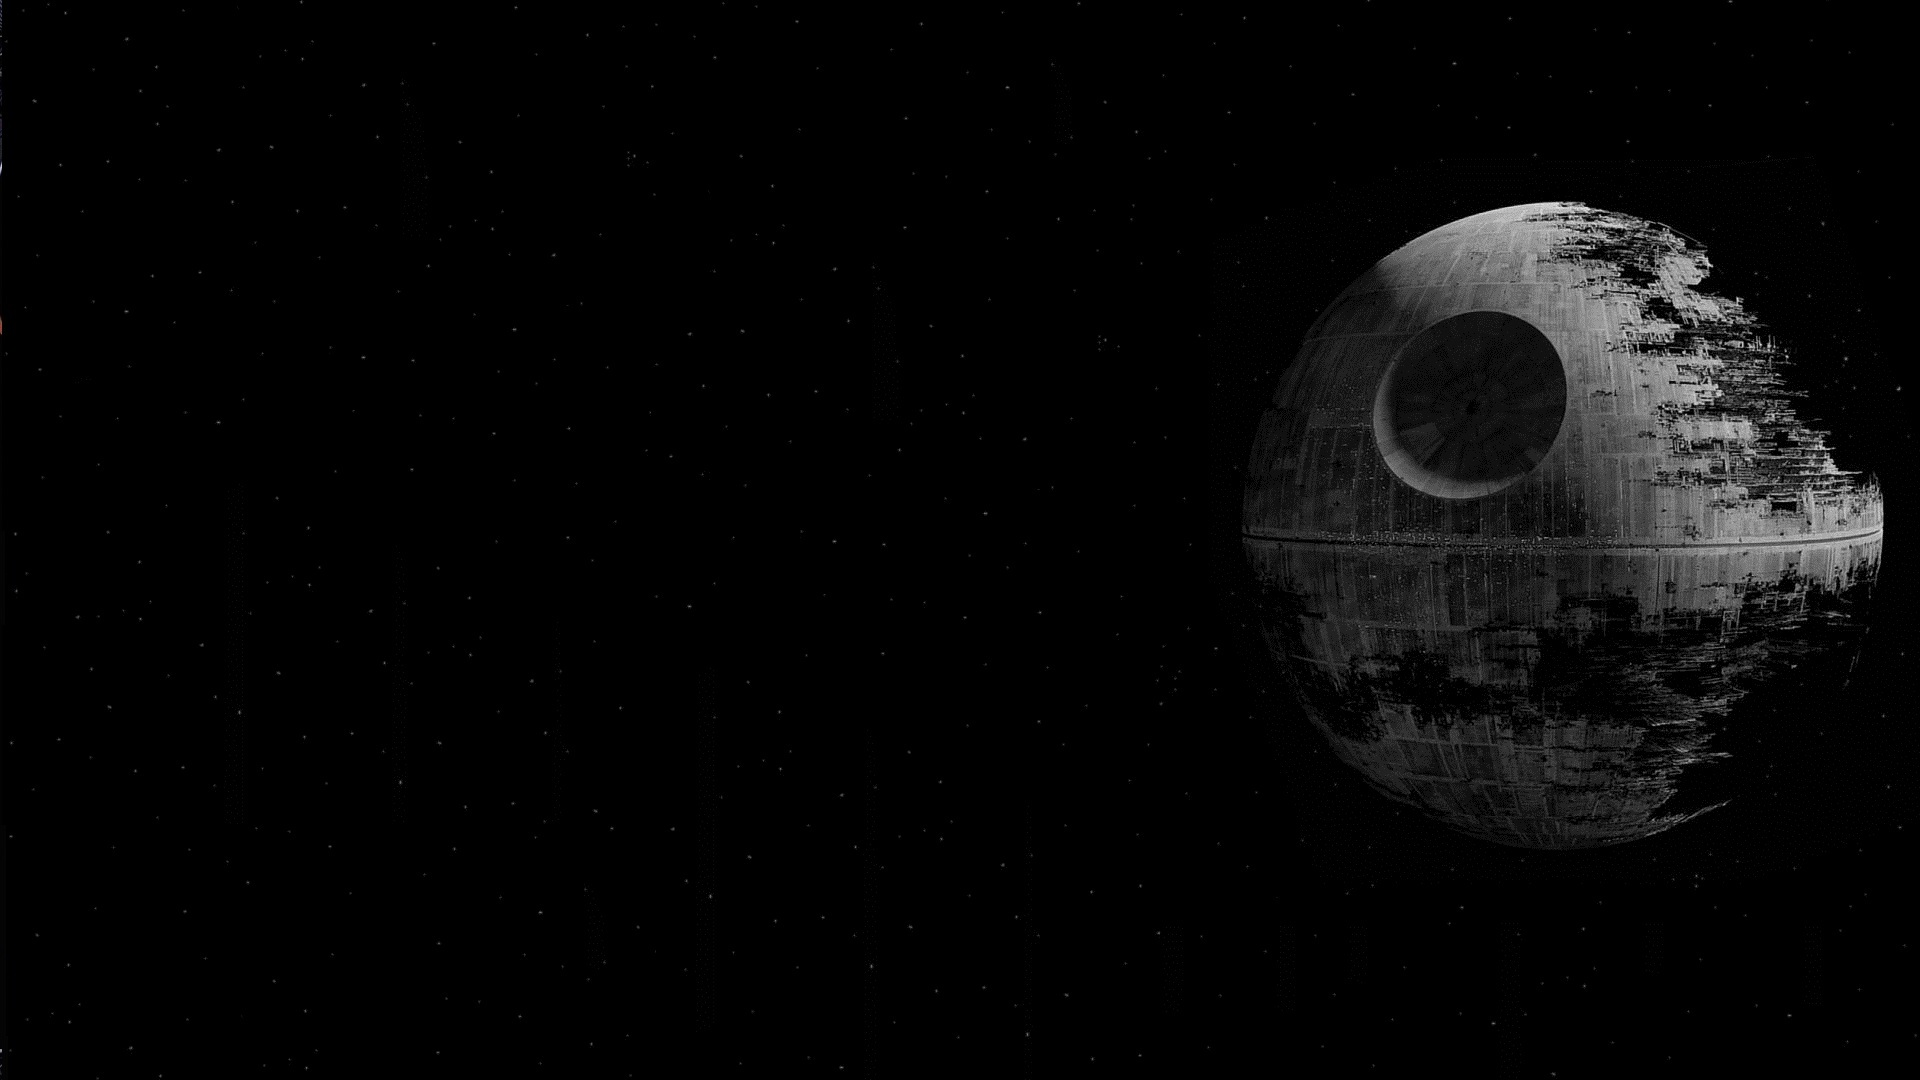 Star Wars Wallpaper 1920x1080 Star Wars Movies Death Star Black 1920x1080